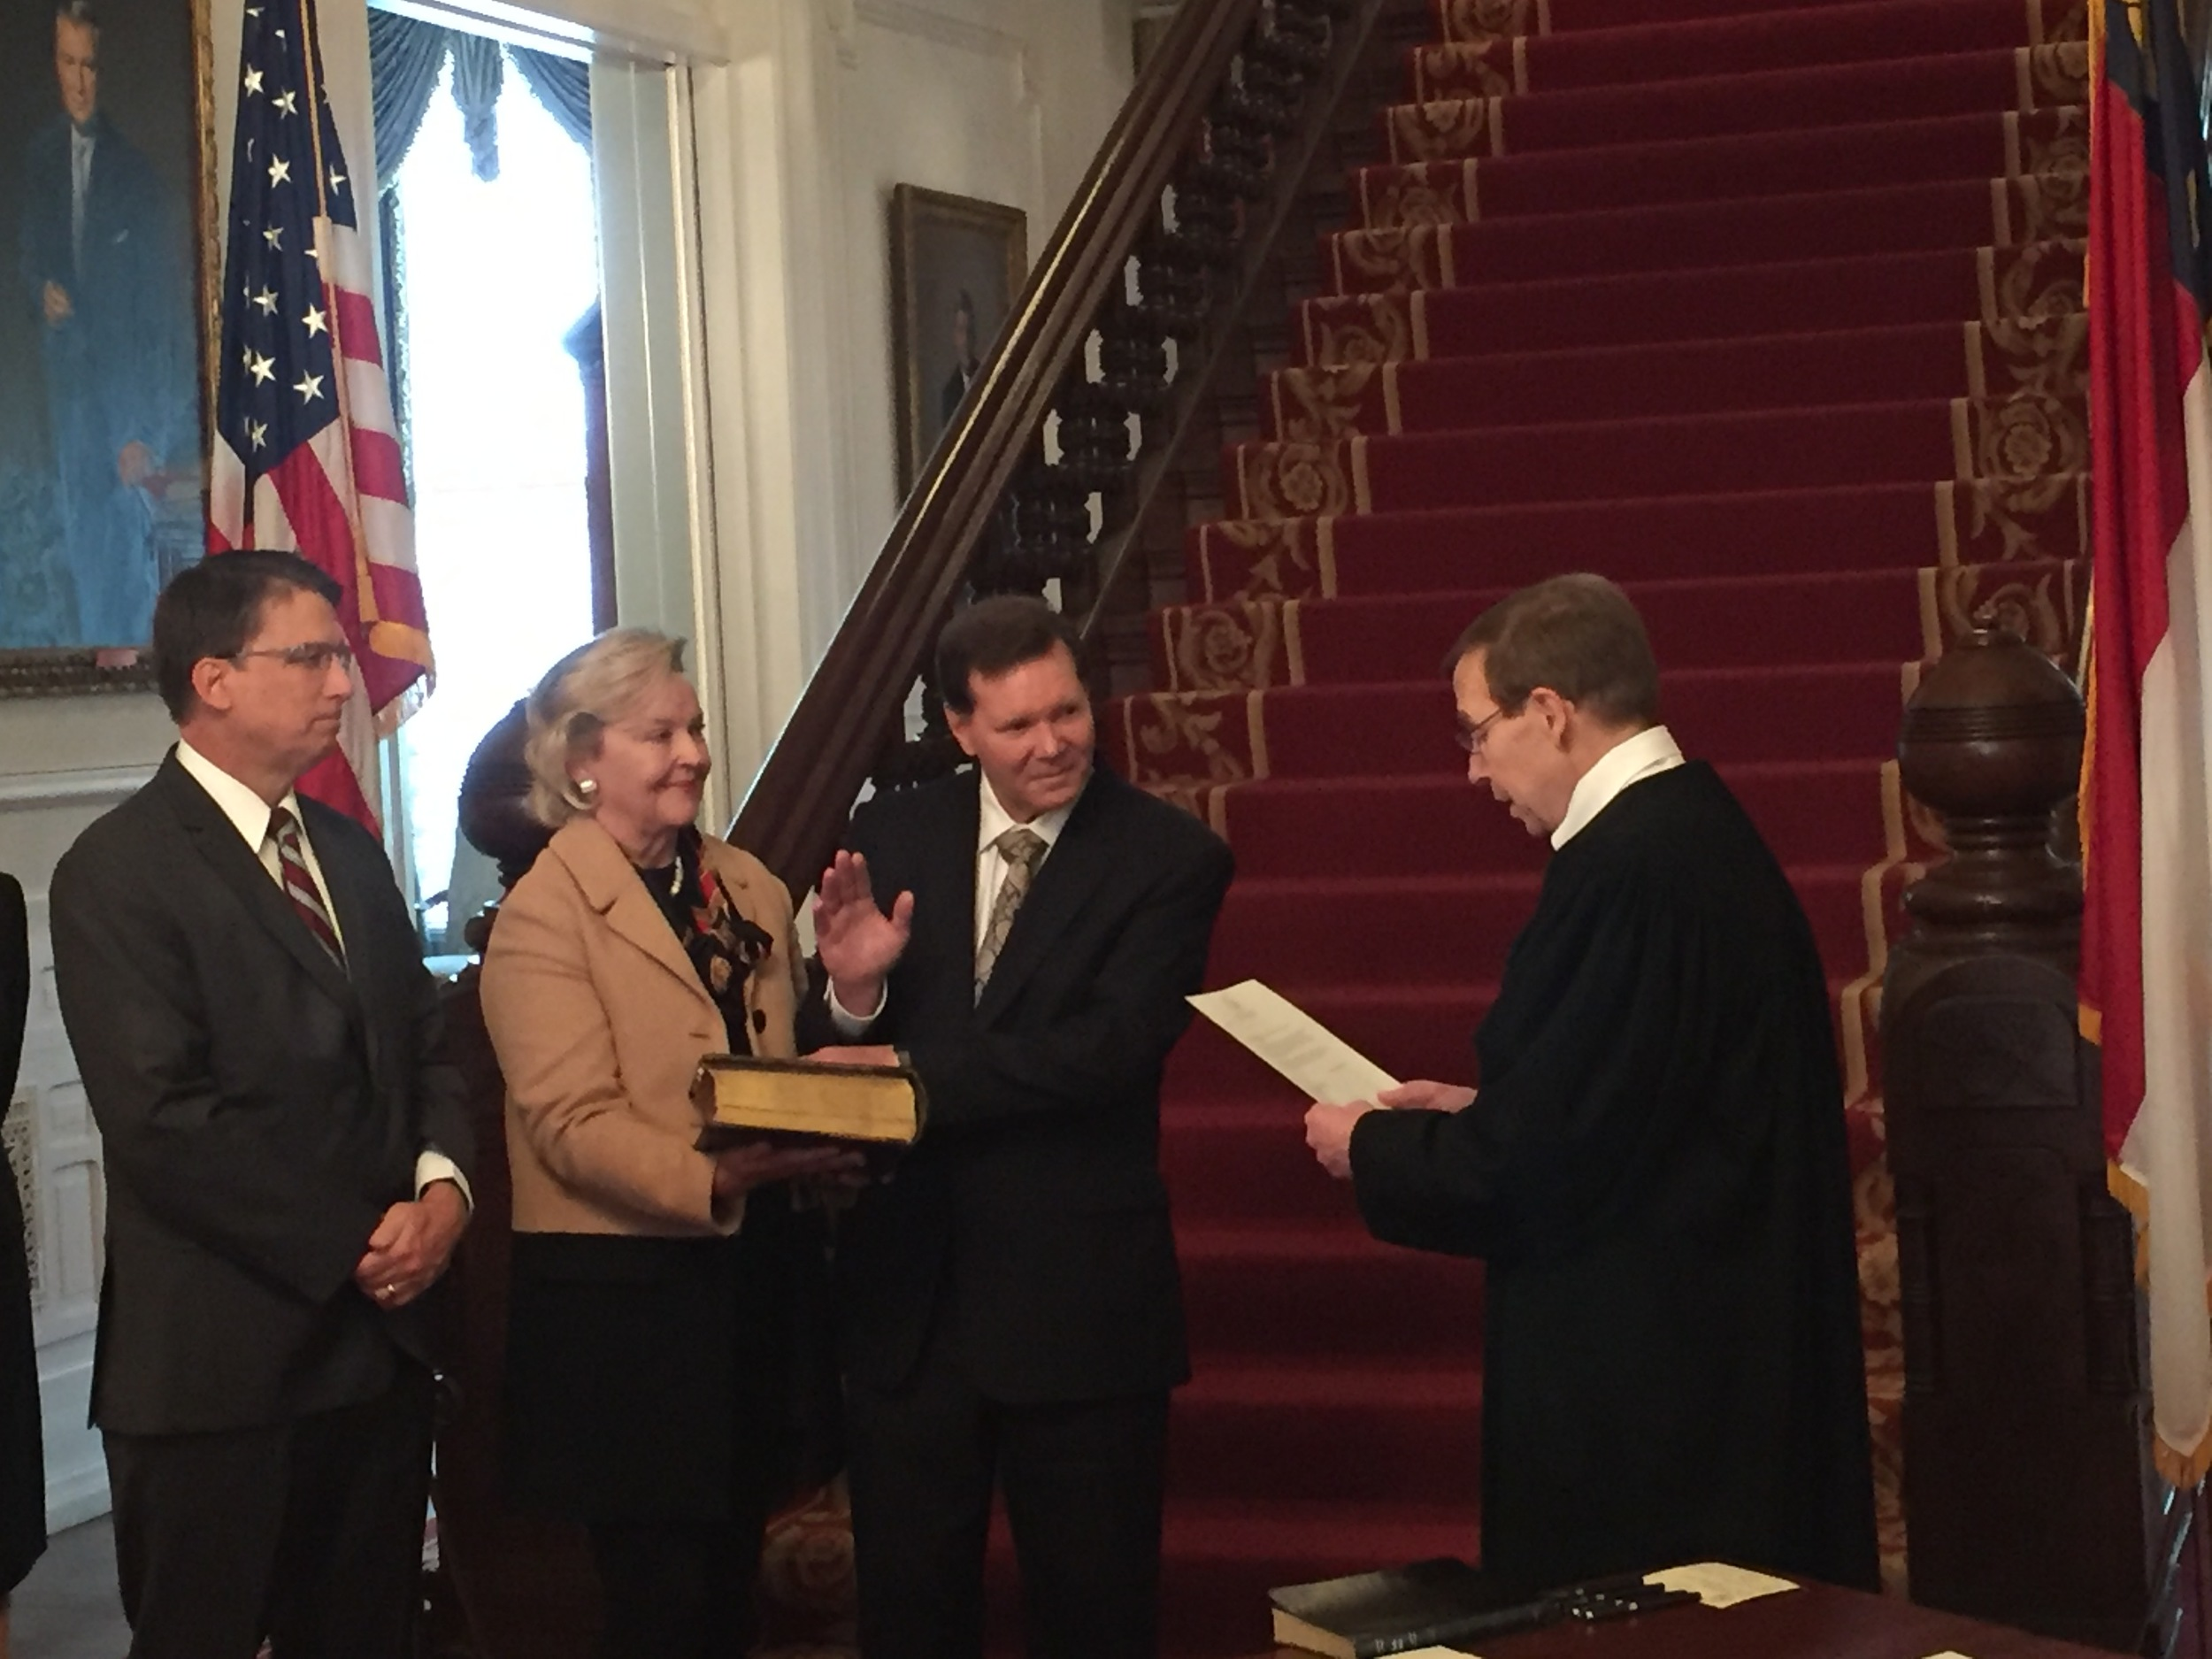 Administering oath of office to Industrial Commissioner Bill Daughtridge, Jr., at Governor's mansion, 18 February 2016.